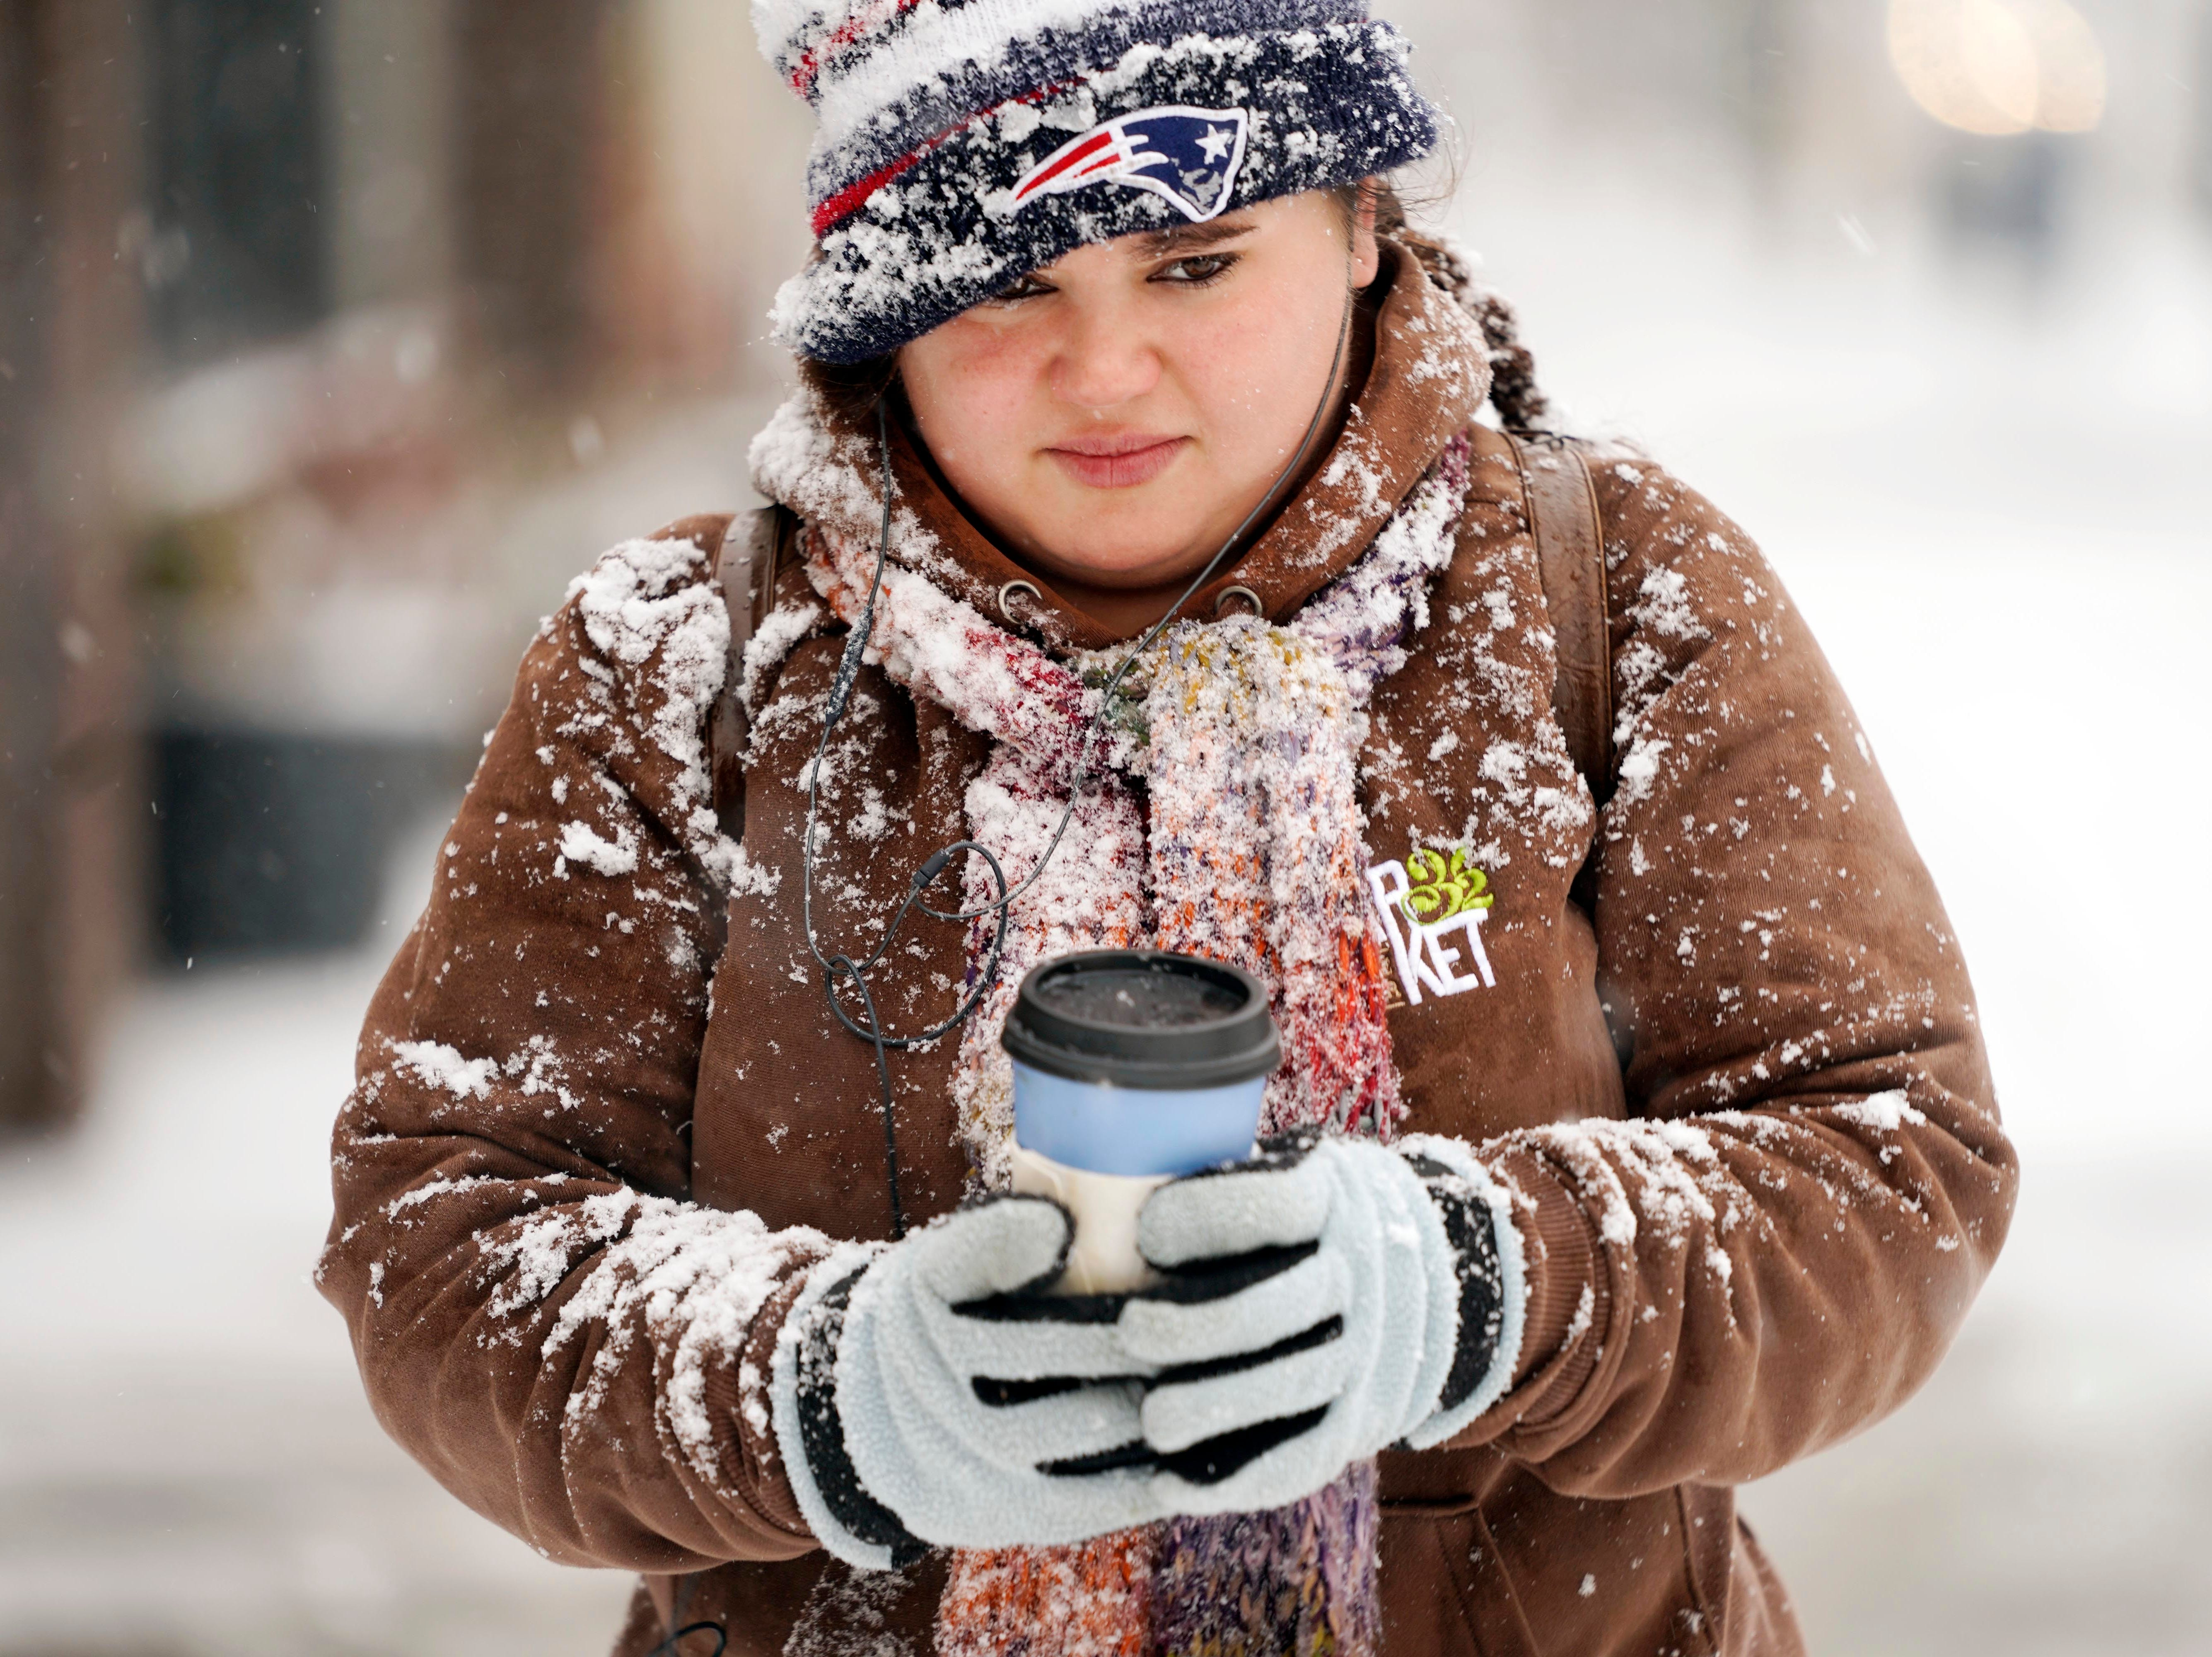 Jennifer Tanner holds a hot cup of coffee while walking in the snow, Friday, Nov. 16, 2018 in Pittsfield, Mass.